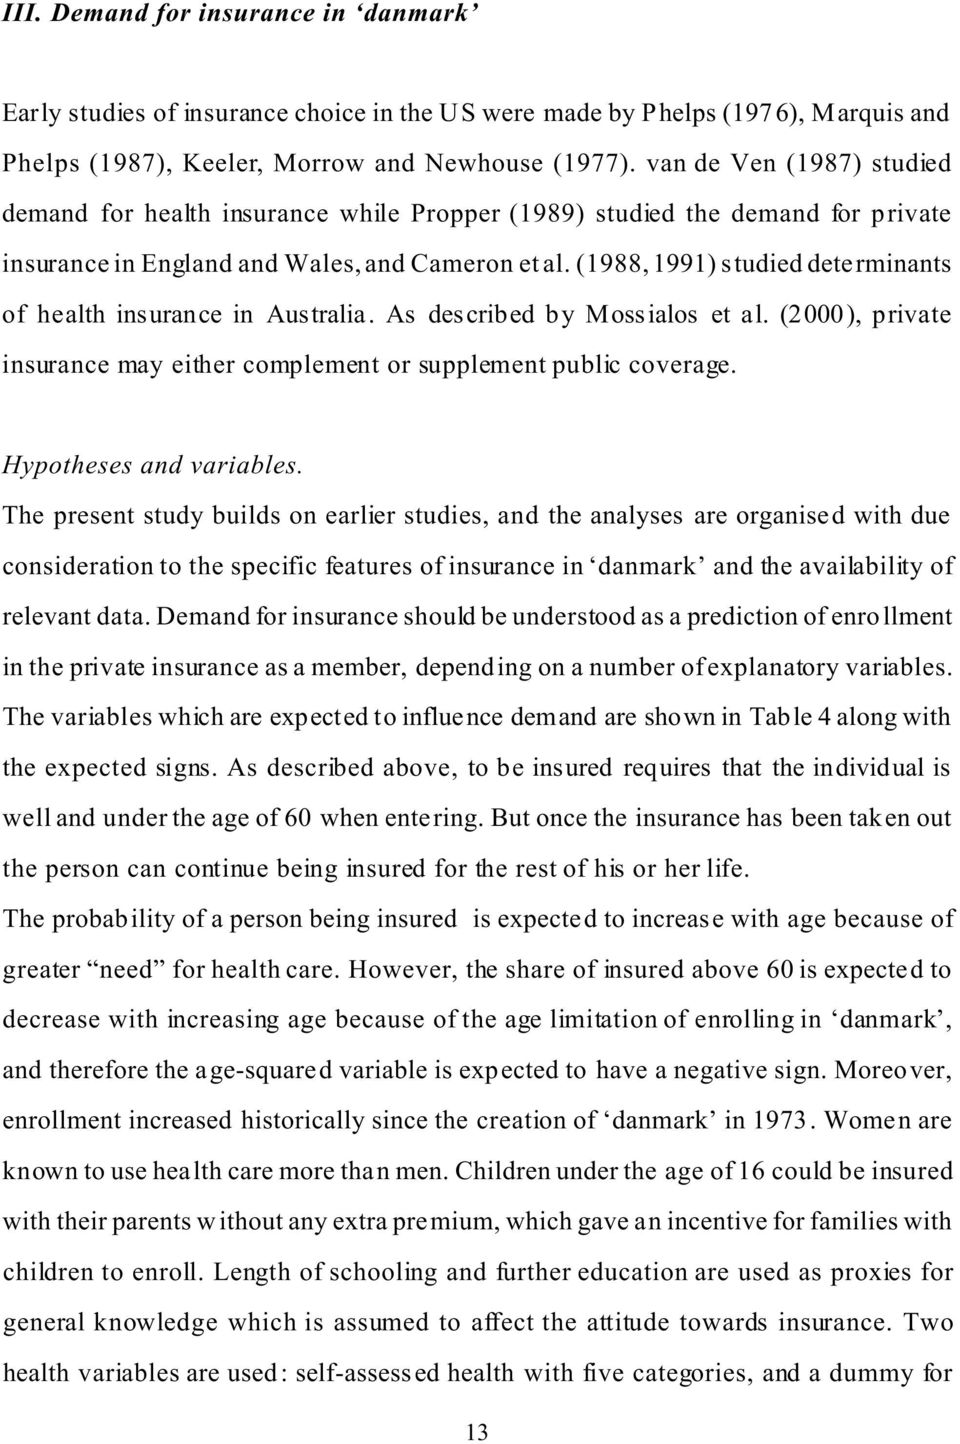 (1988, 1991) studied determinants of health insurance in Australia. As described by Mossialos et al. (2000), private insurance may either complement or supplement public coverage.